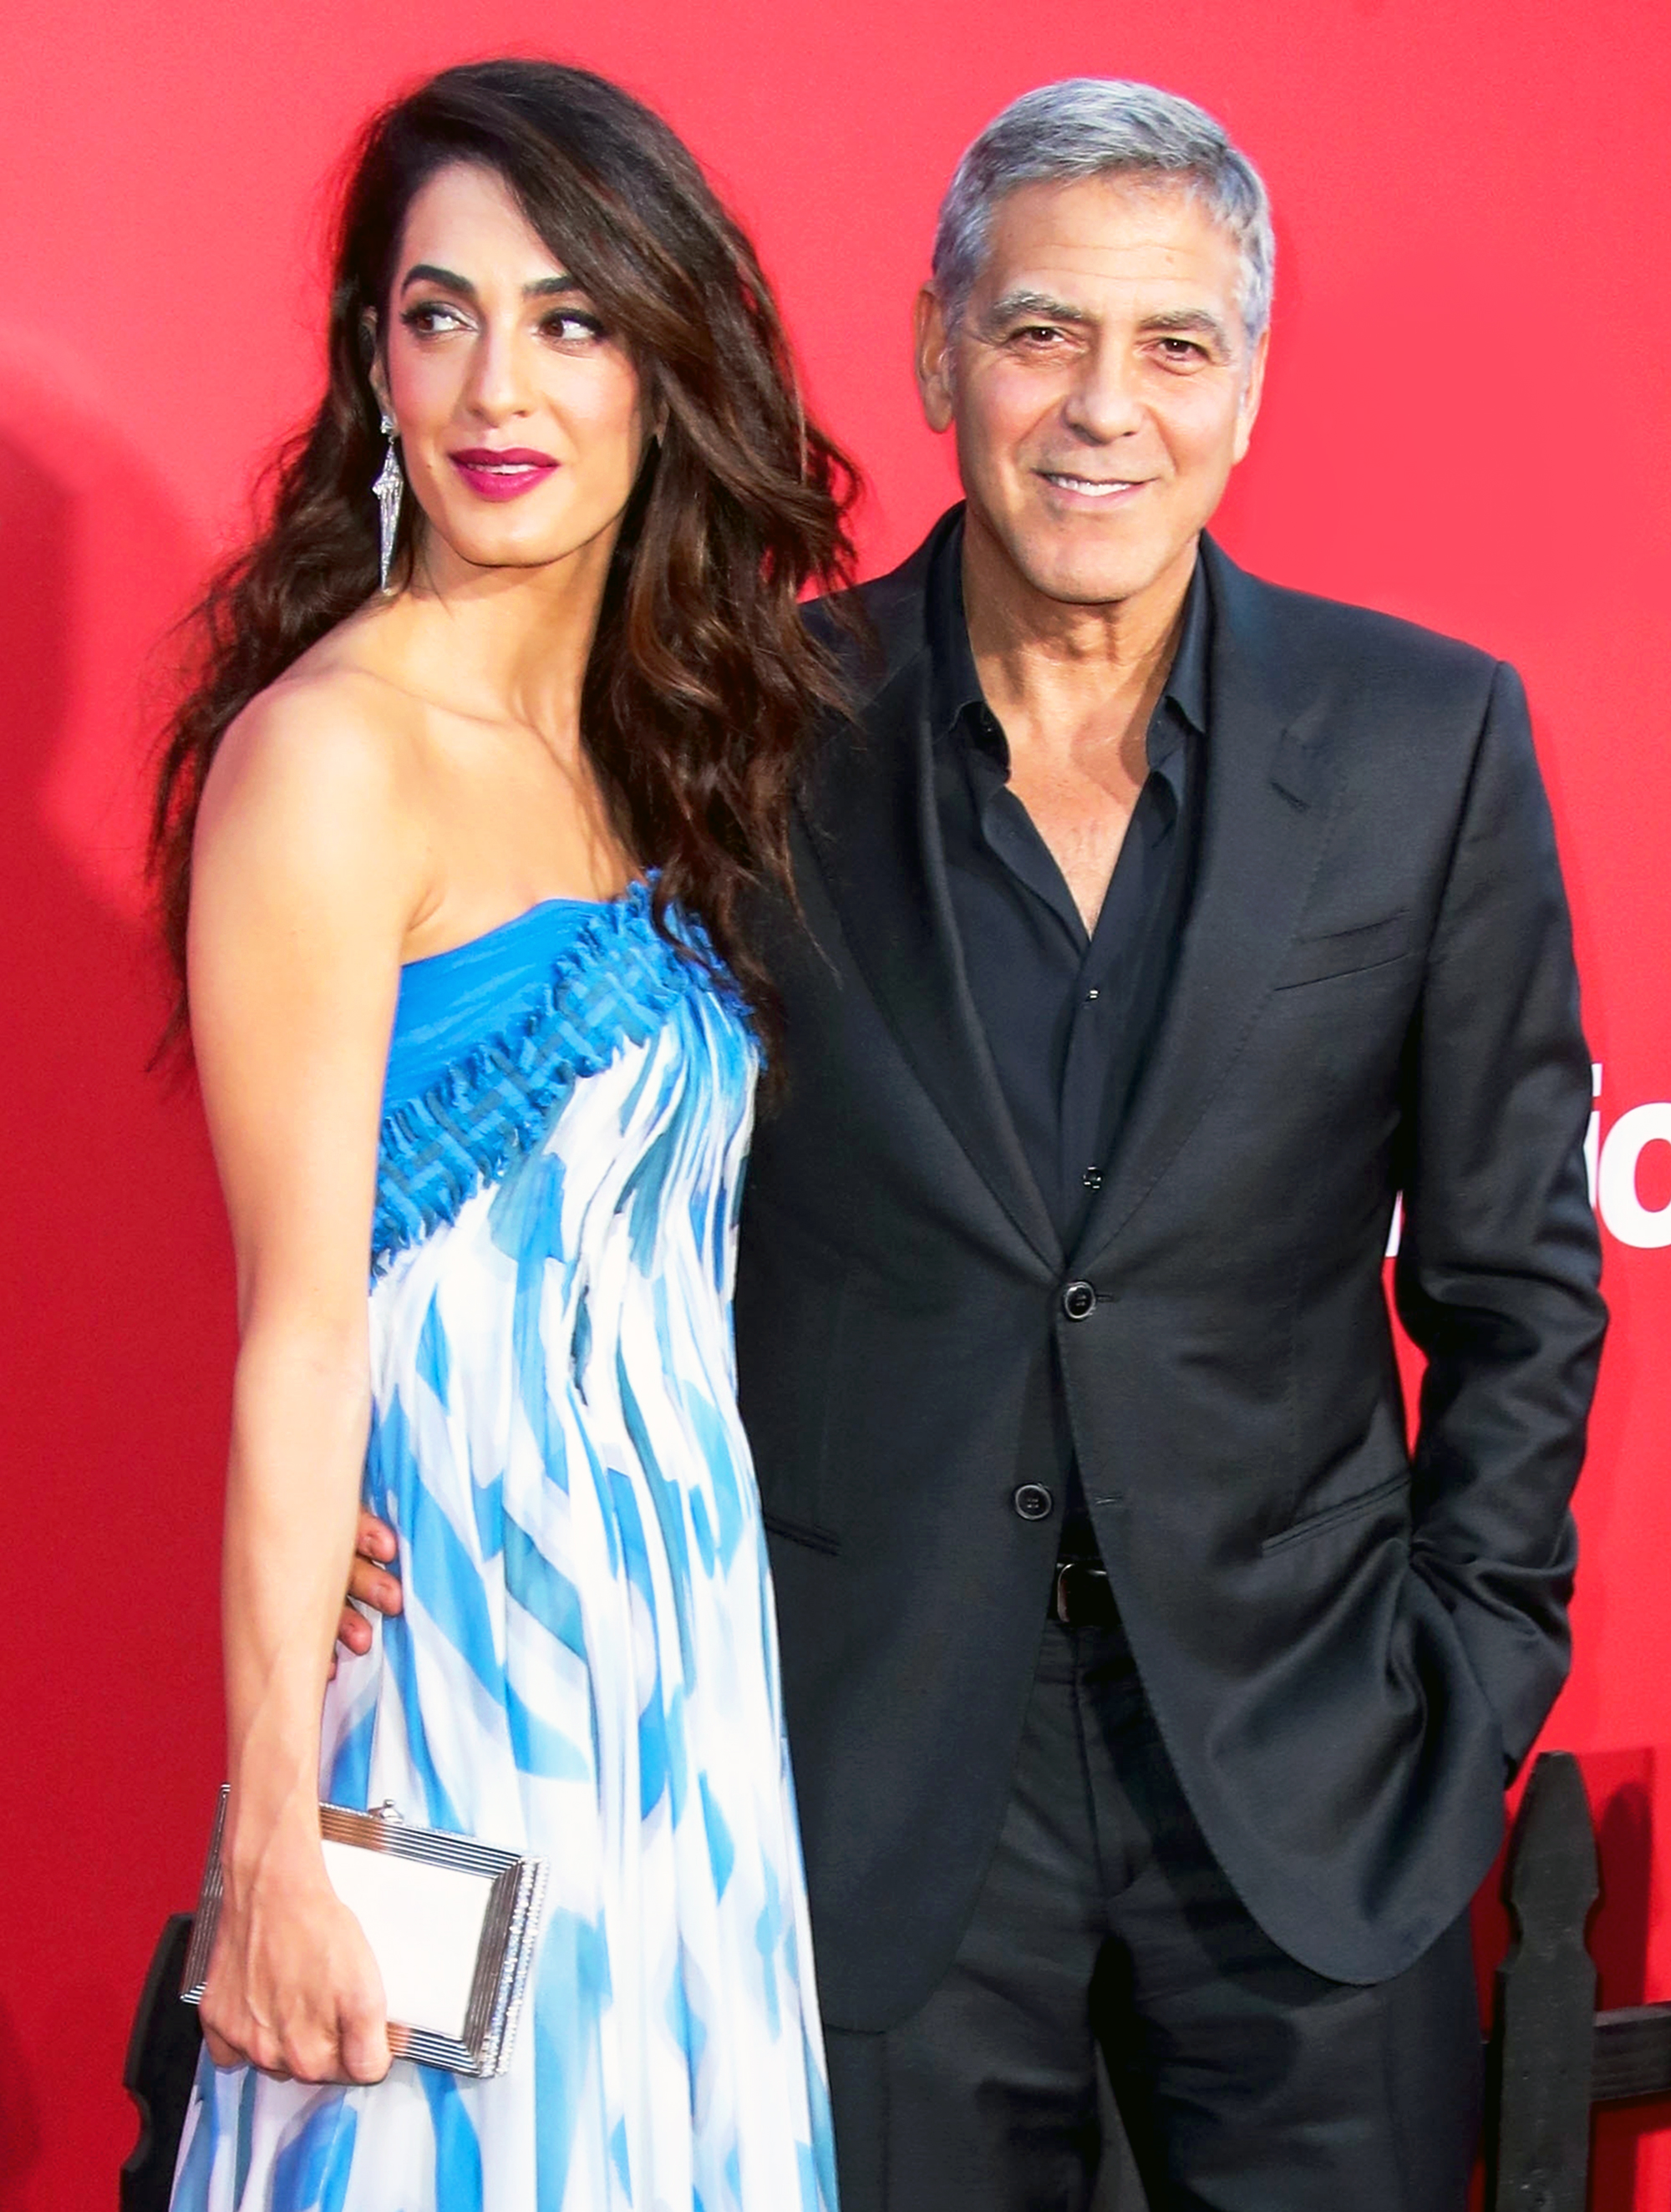 George Clooney Talks Over Wife Amal Clooney: 'Her Life Meant More to Me Than Mine'